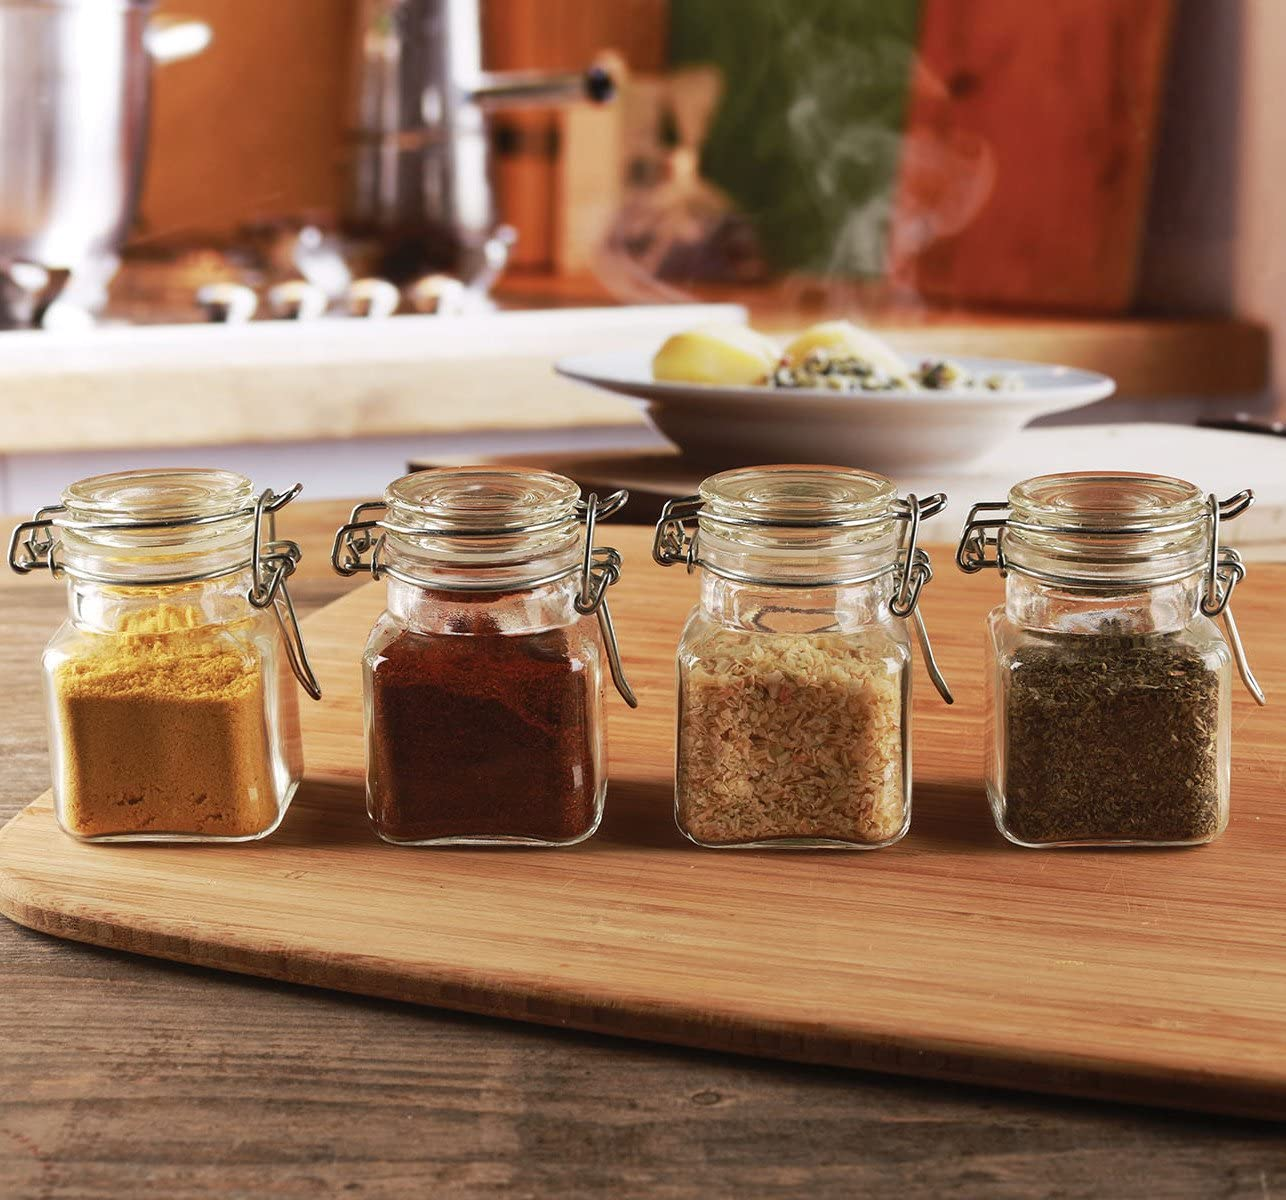 Circleware Glass Spice Jar with Swing Top Hermetic Airtight Locking Lid Set of 4, Kitchen Food Preserving Storage Containers for Coffee, Sugar, Tea, and Himalayan Seasoning, 3.76 oz, Clear